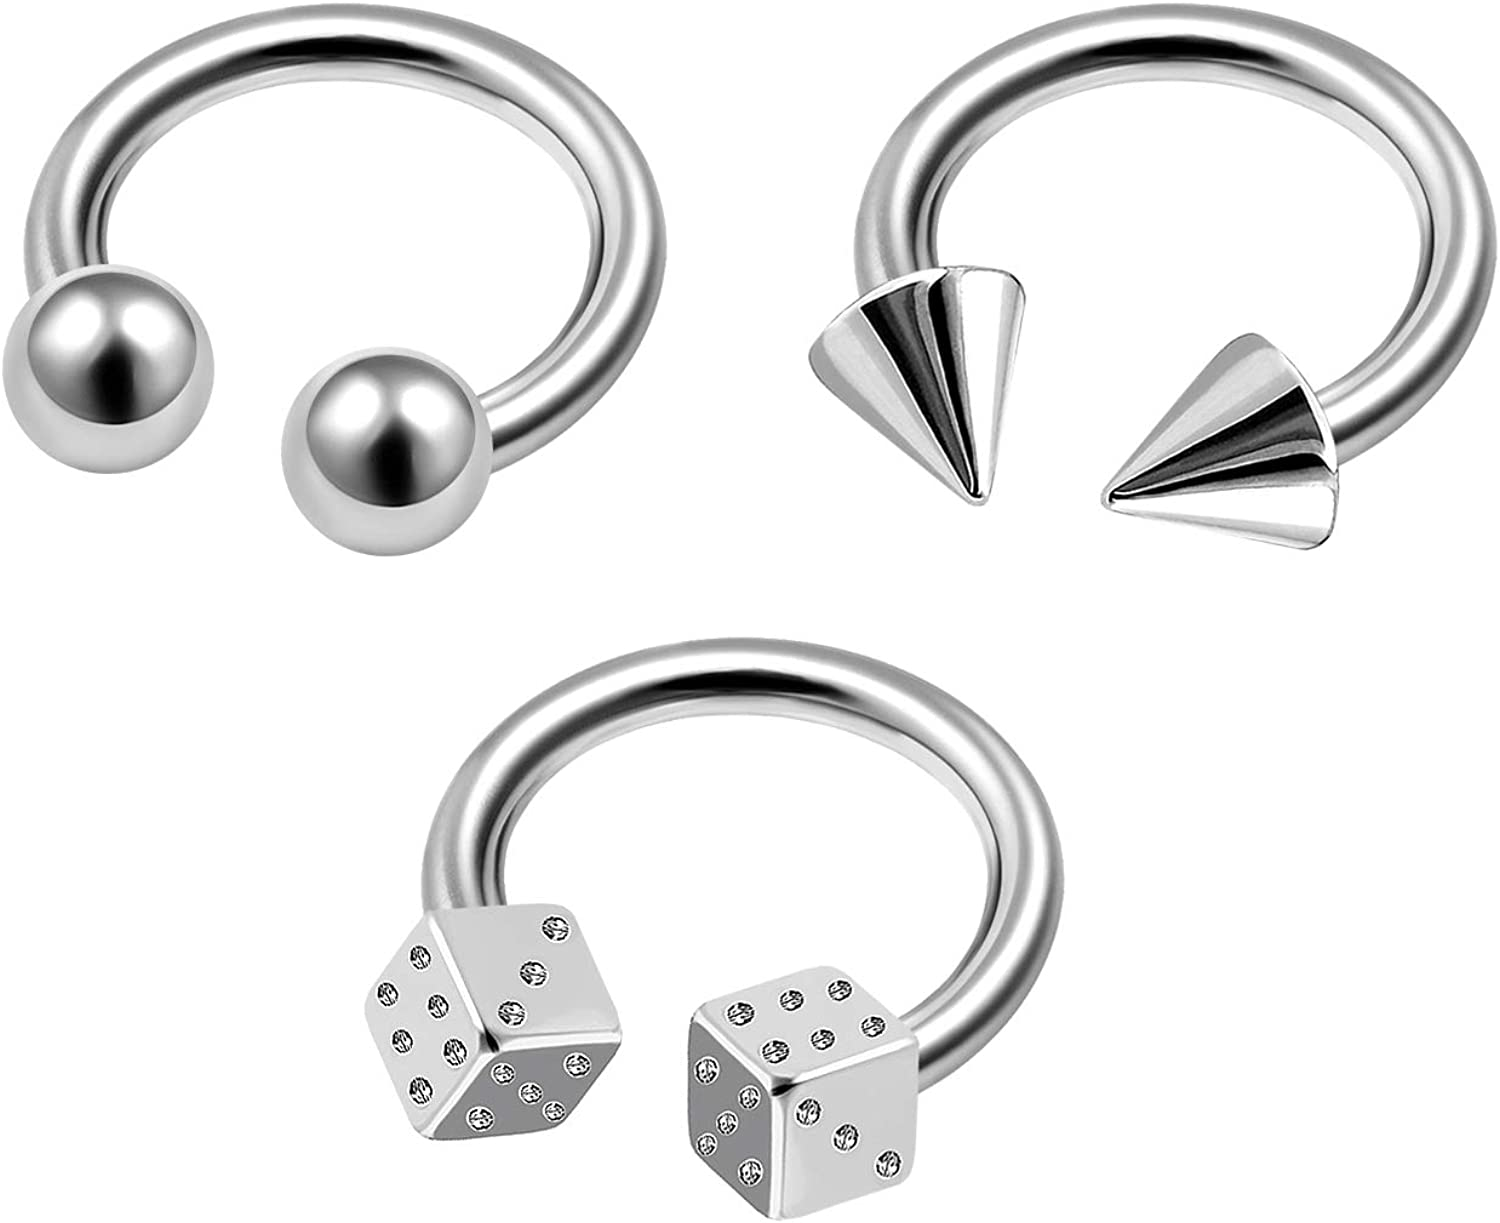 MATIGA 3Pcs Surgical Steel 16g Horseshoe Hoop Piercing Jewelry Cartilage Septum Nose Eyebrow Helix 4mm Cone Ball Dice More Choices